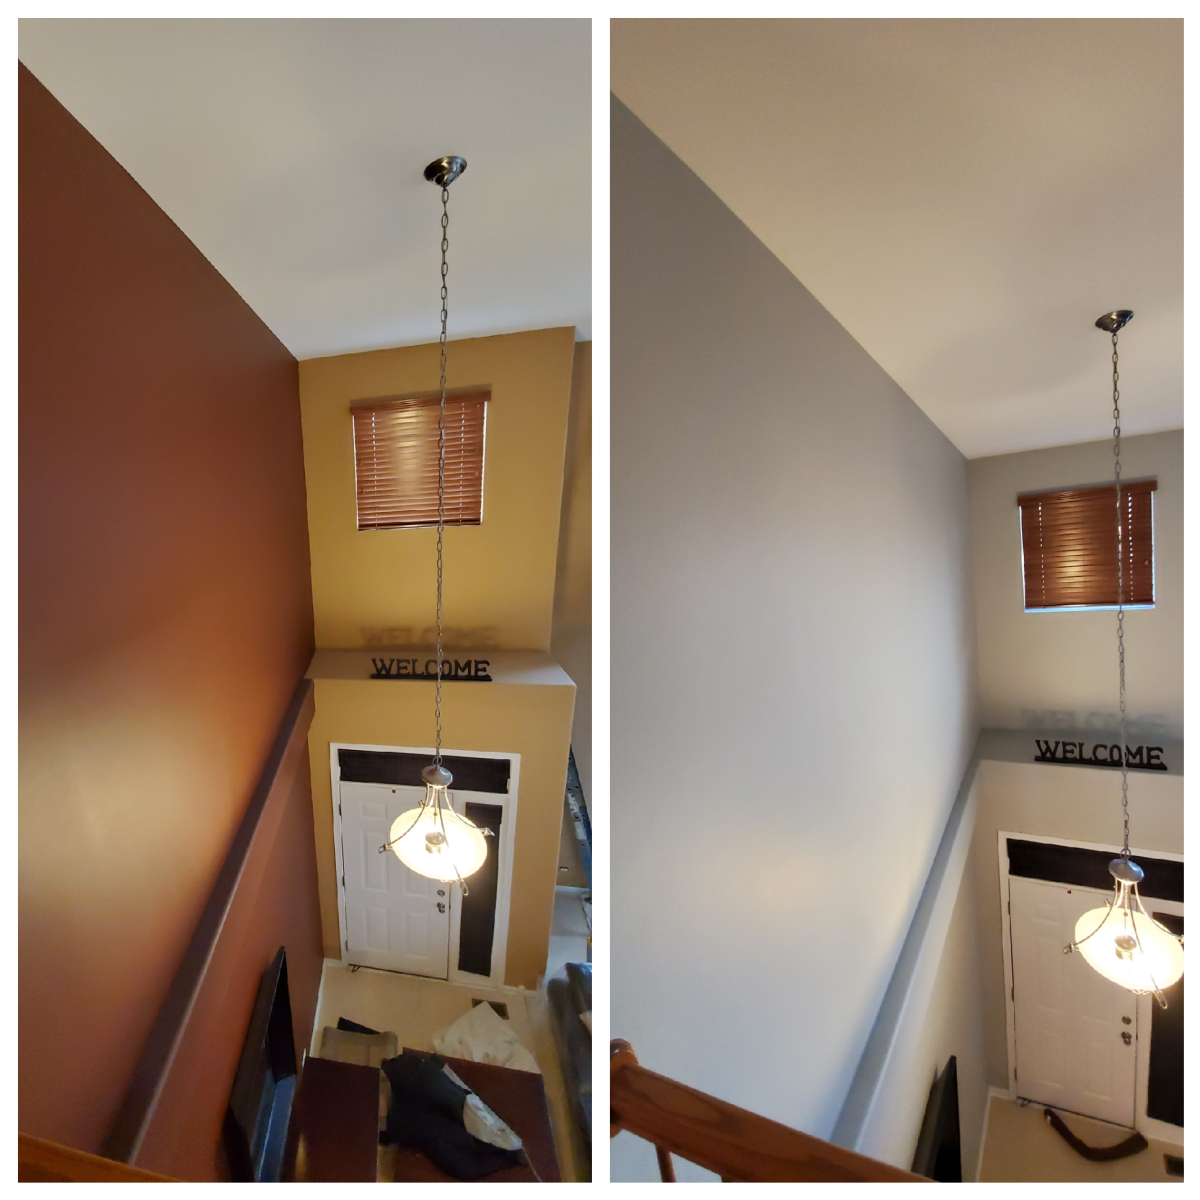 Foyer walls I painted with color SW-7015. This color looks more bluish in a low-lit room.